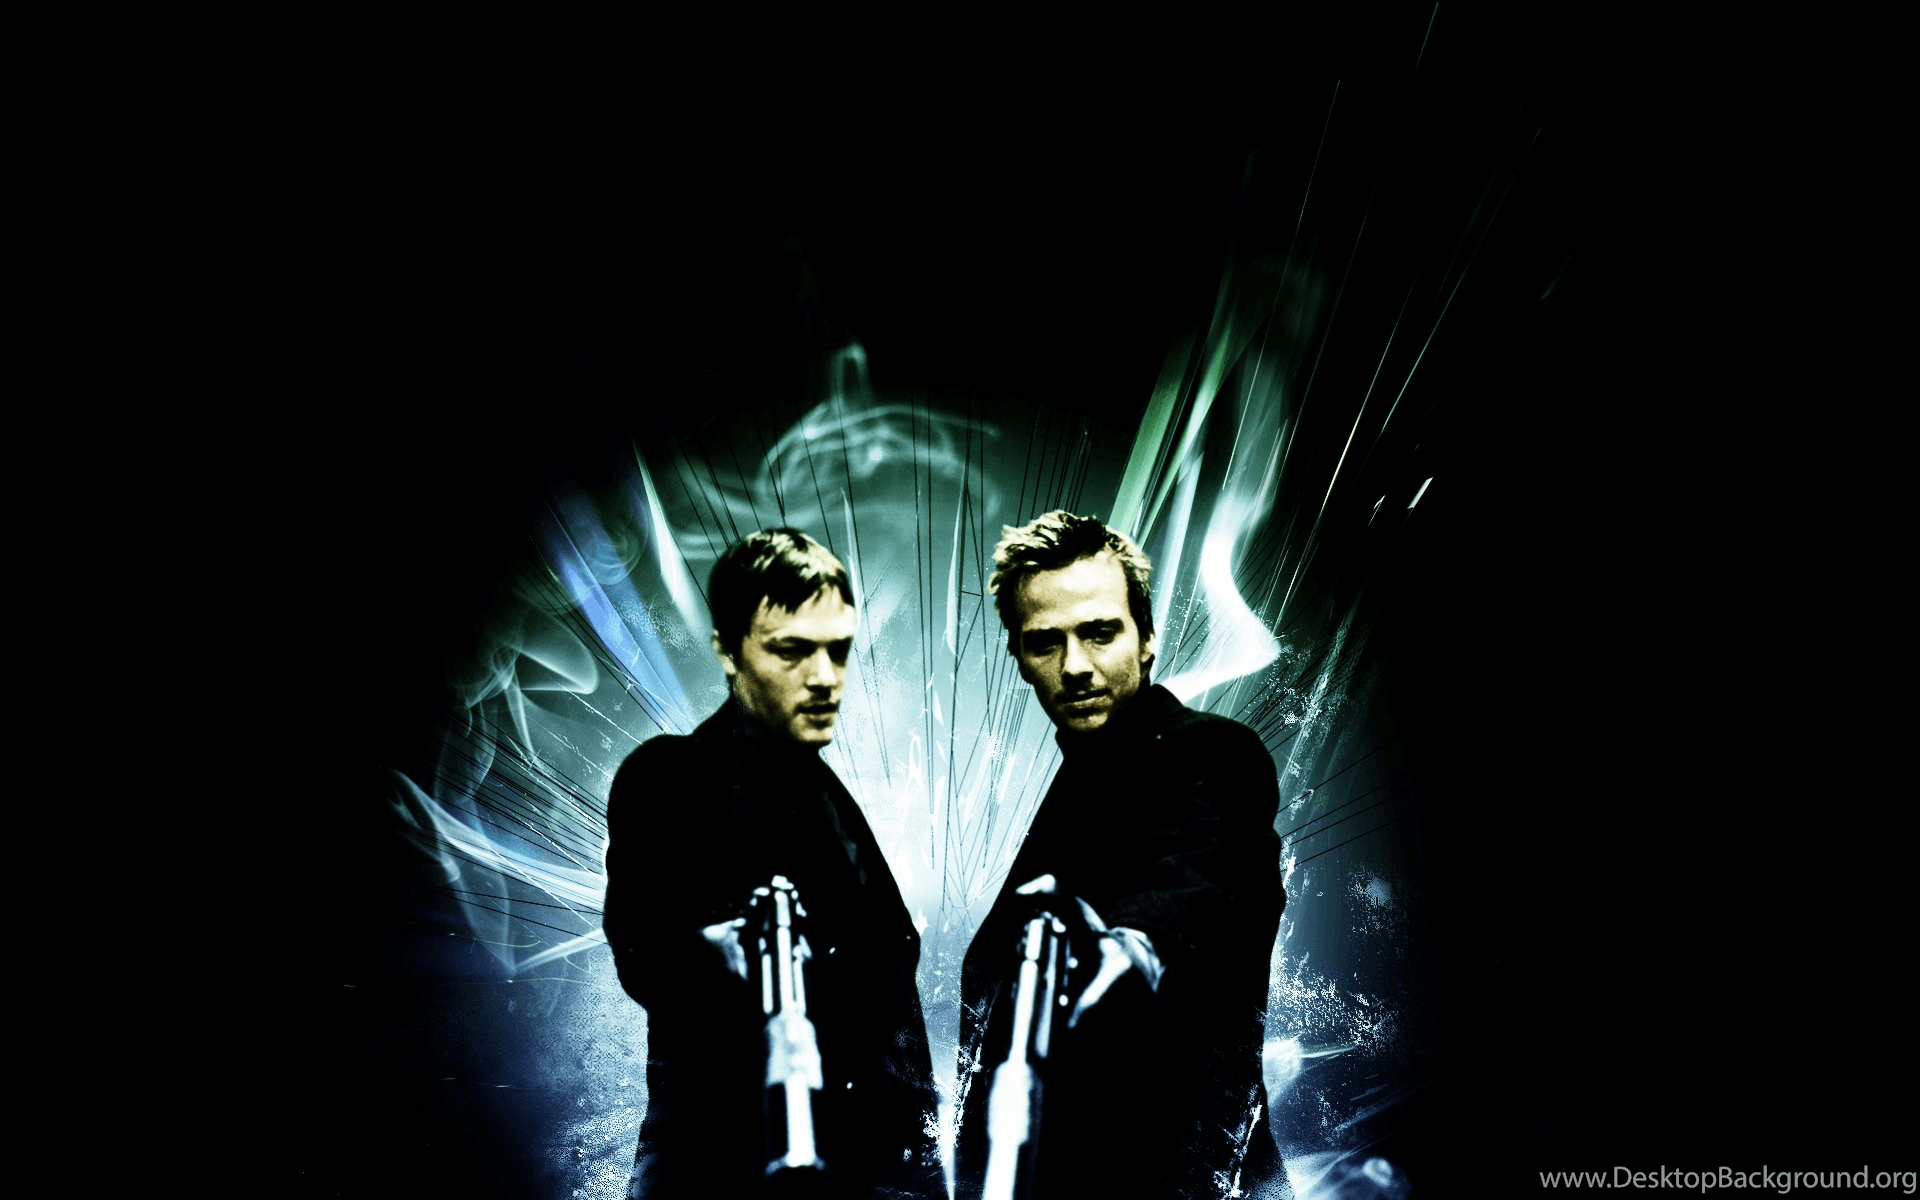 1920x1200 The Boondock Saints Wallpapers WeSharePics Desktop Background